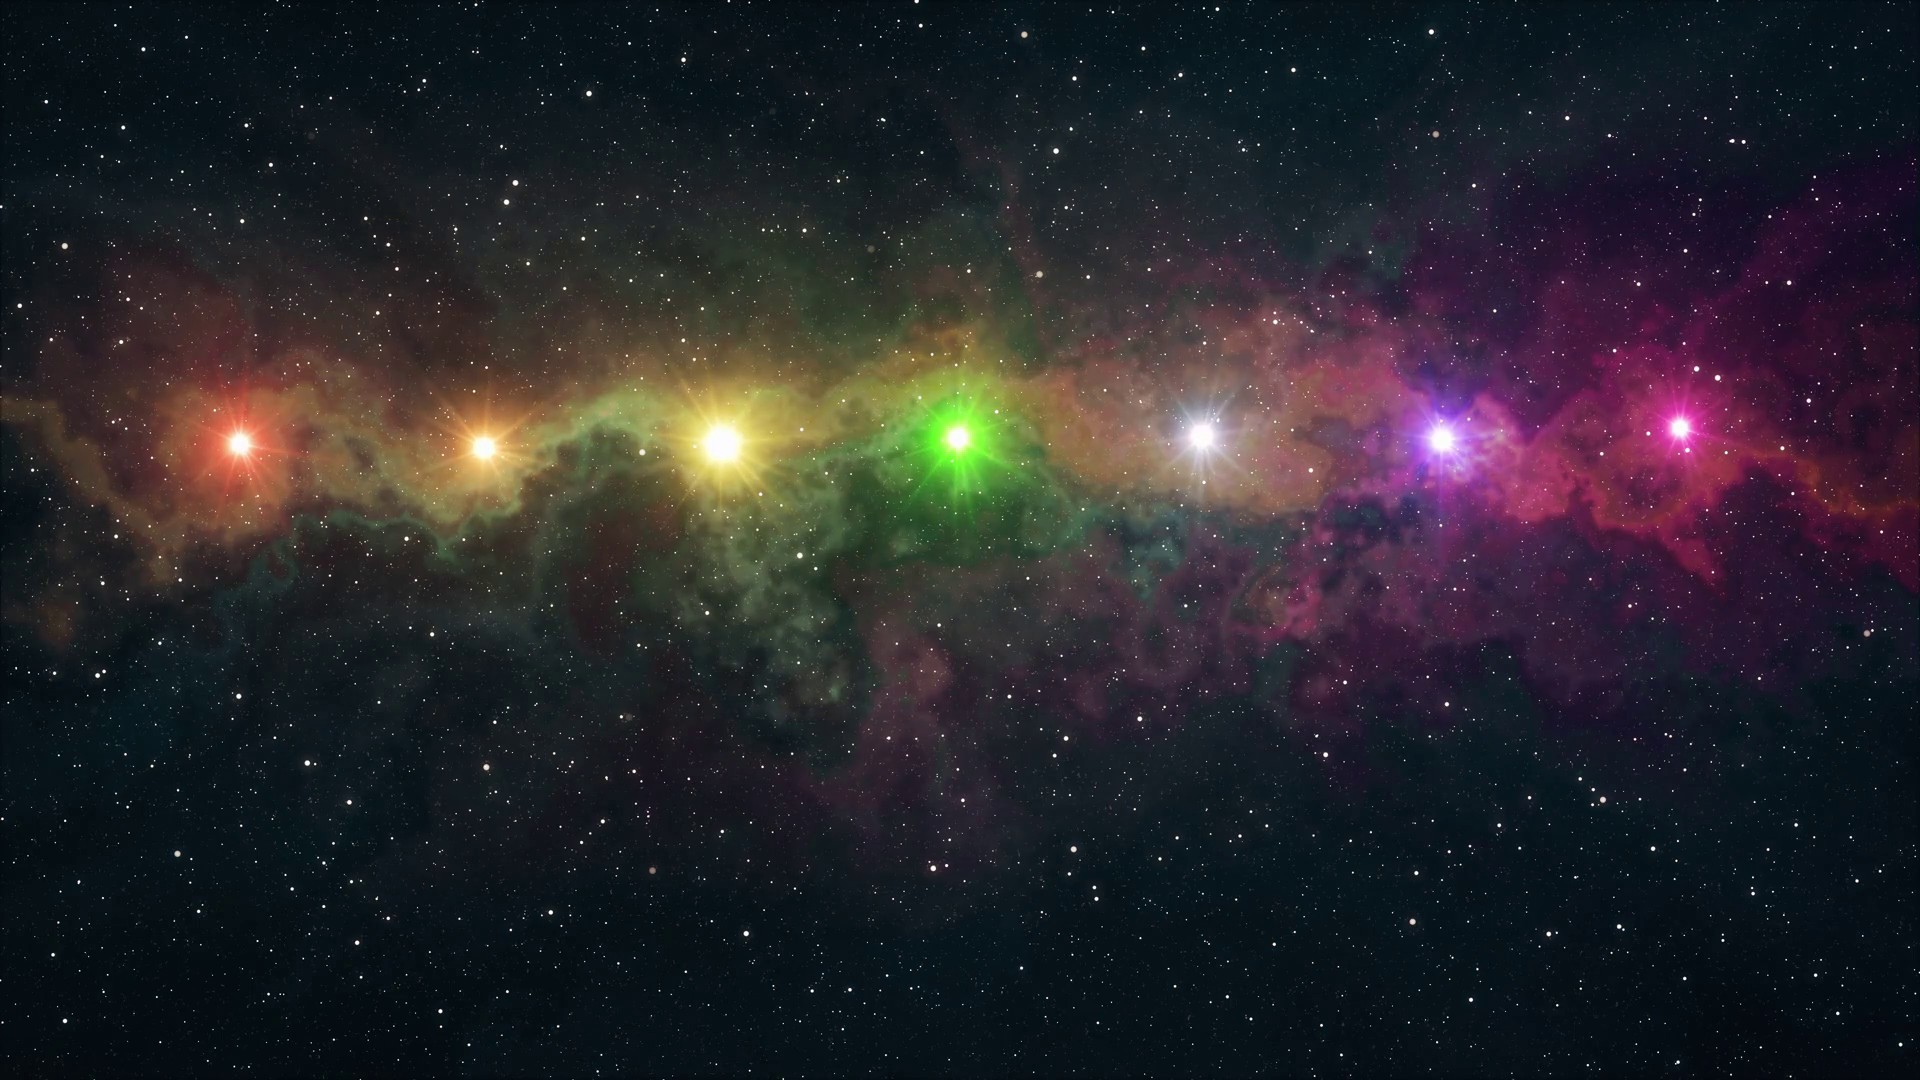 1920x1080 seven rainbow colored stars flickering shine in soft moving nebula night  sky animation background new quality nature scenic cool colorful nice light  ...